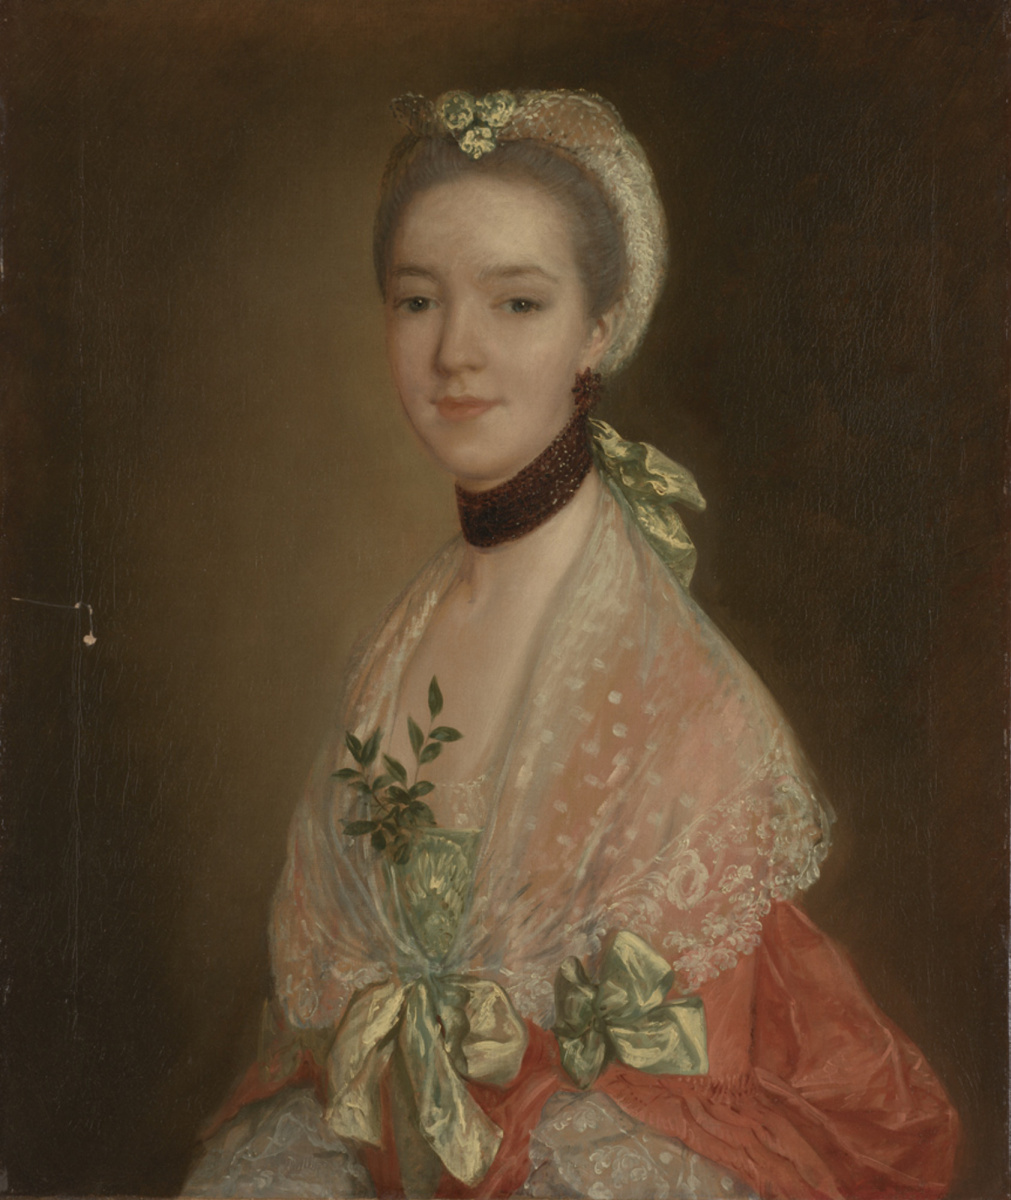 Thomas Gainsborough. Portrait of a young woman